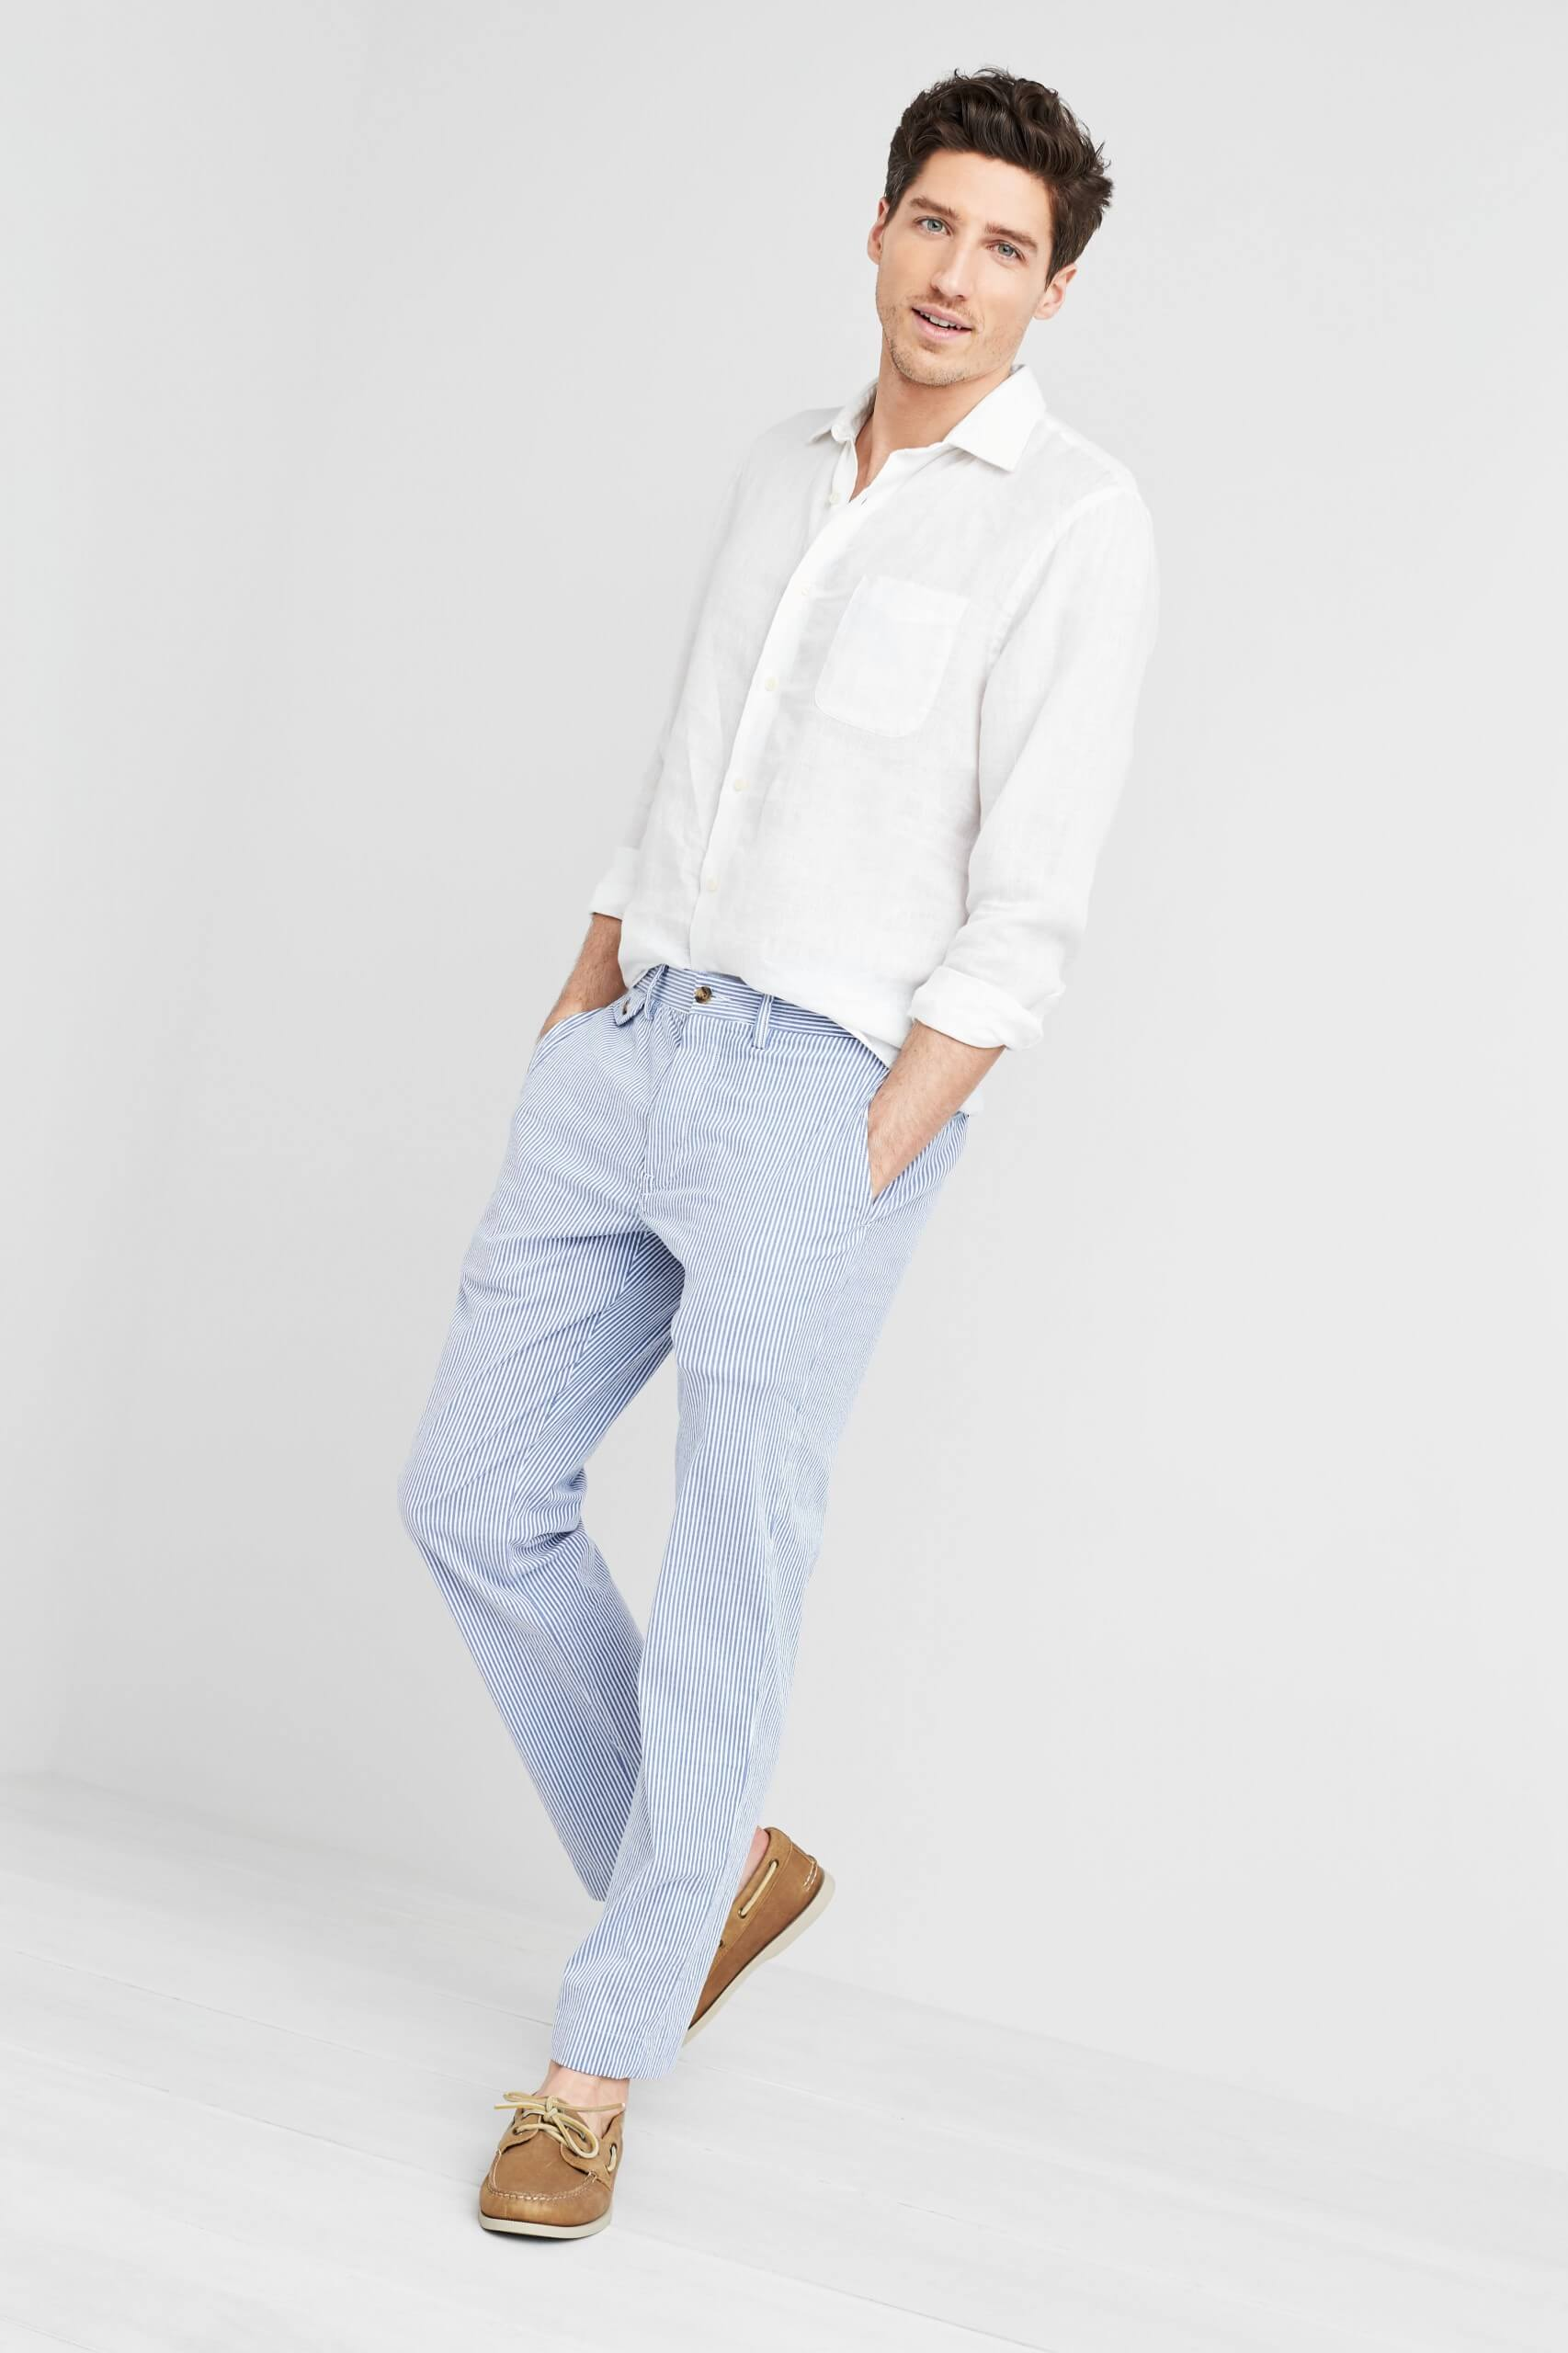 Stitch Fix Men's model wearing white button-down shirt, blue chinos and brown boat shoes.